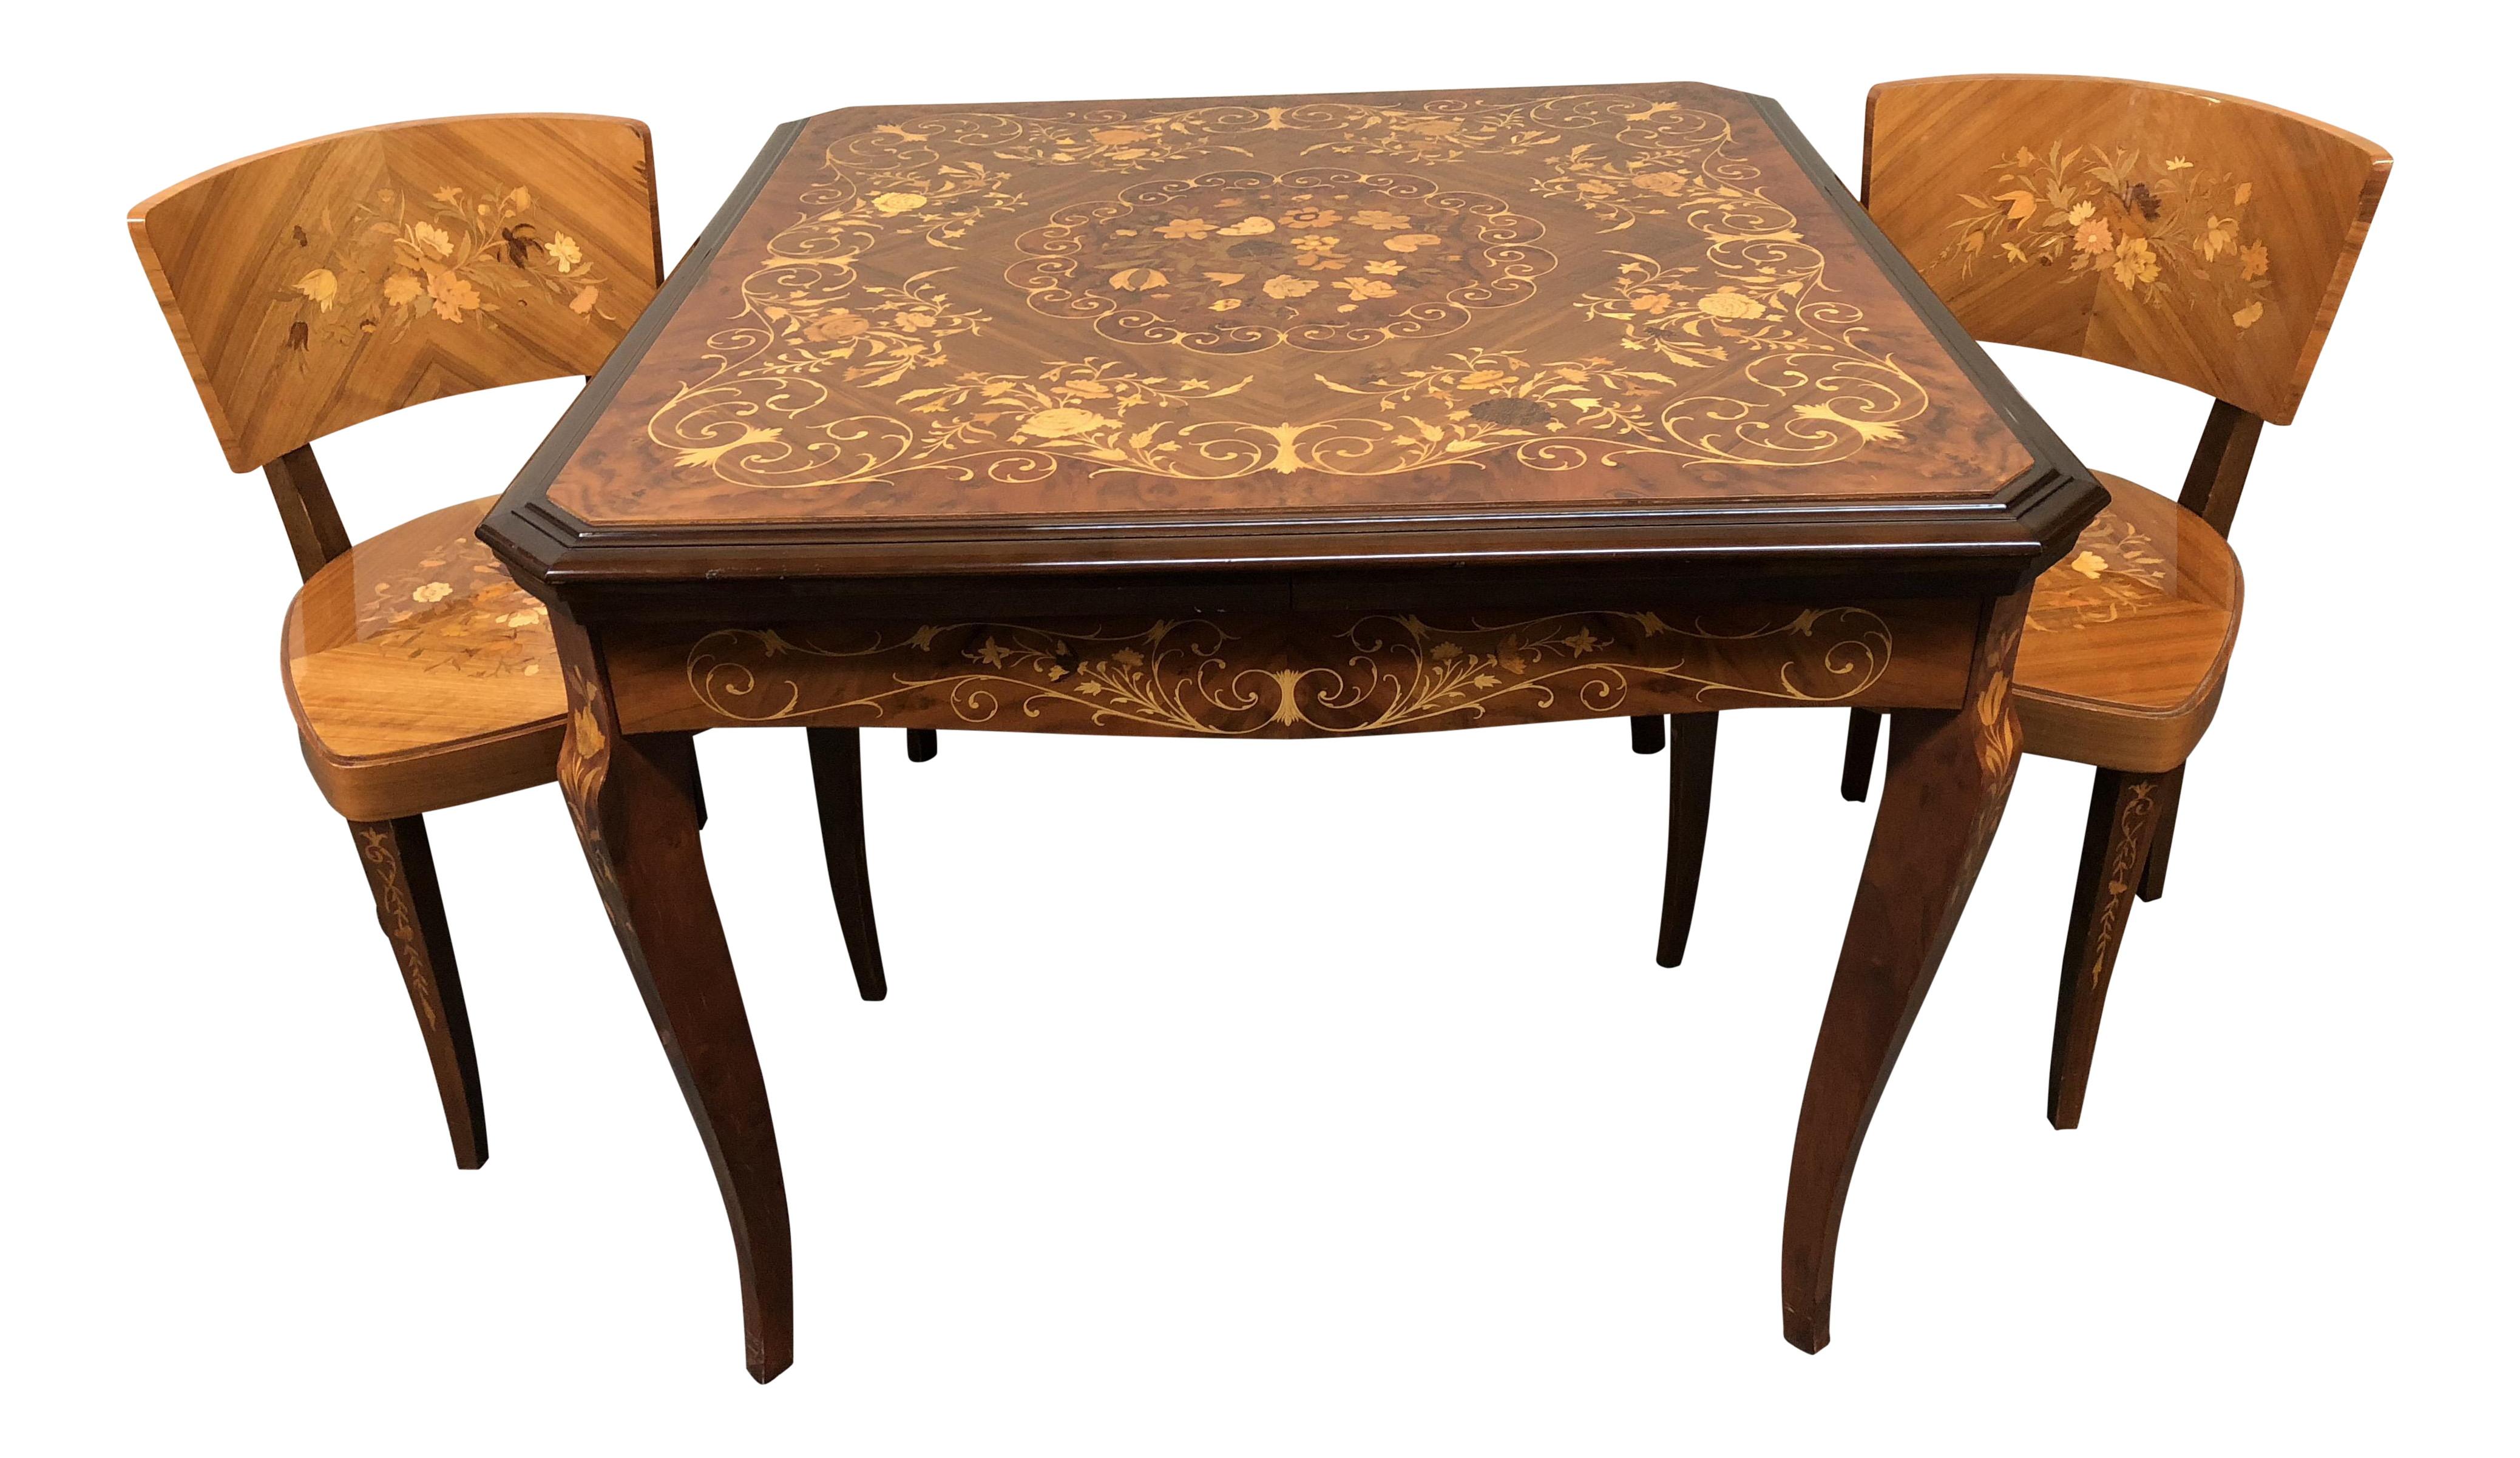 1960s Italian Marquetry Convertible Gaming Table And Chairs   3 Piece Set